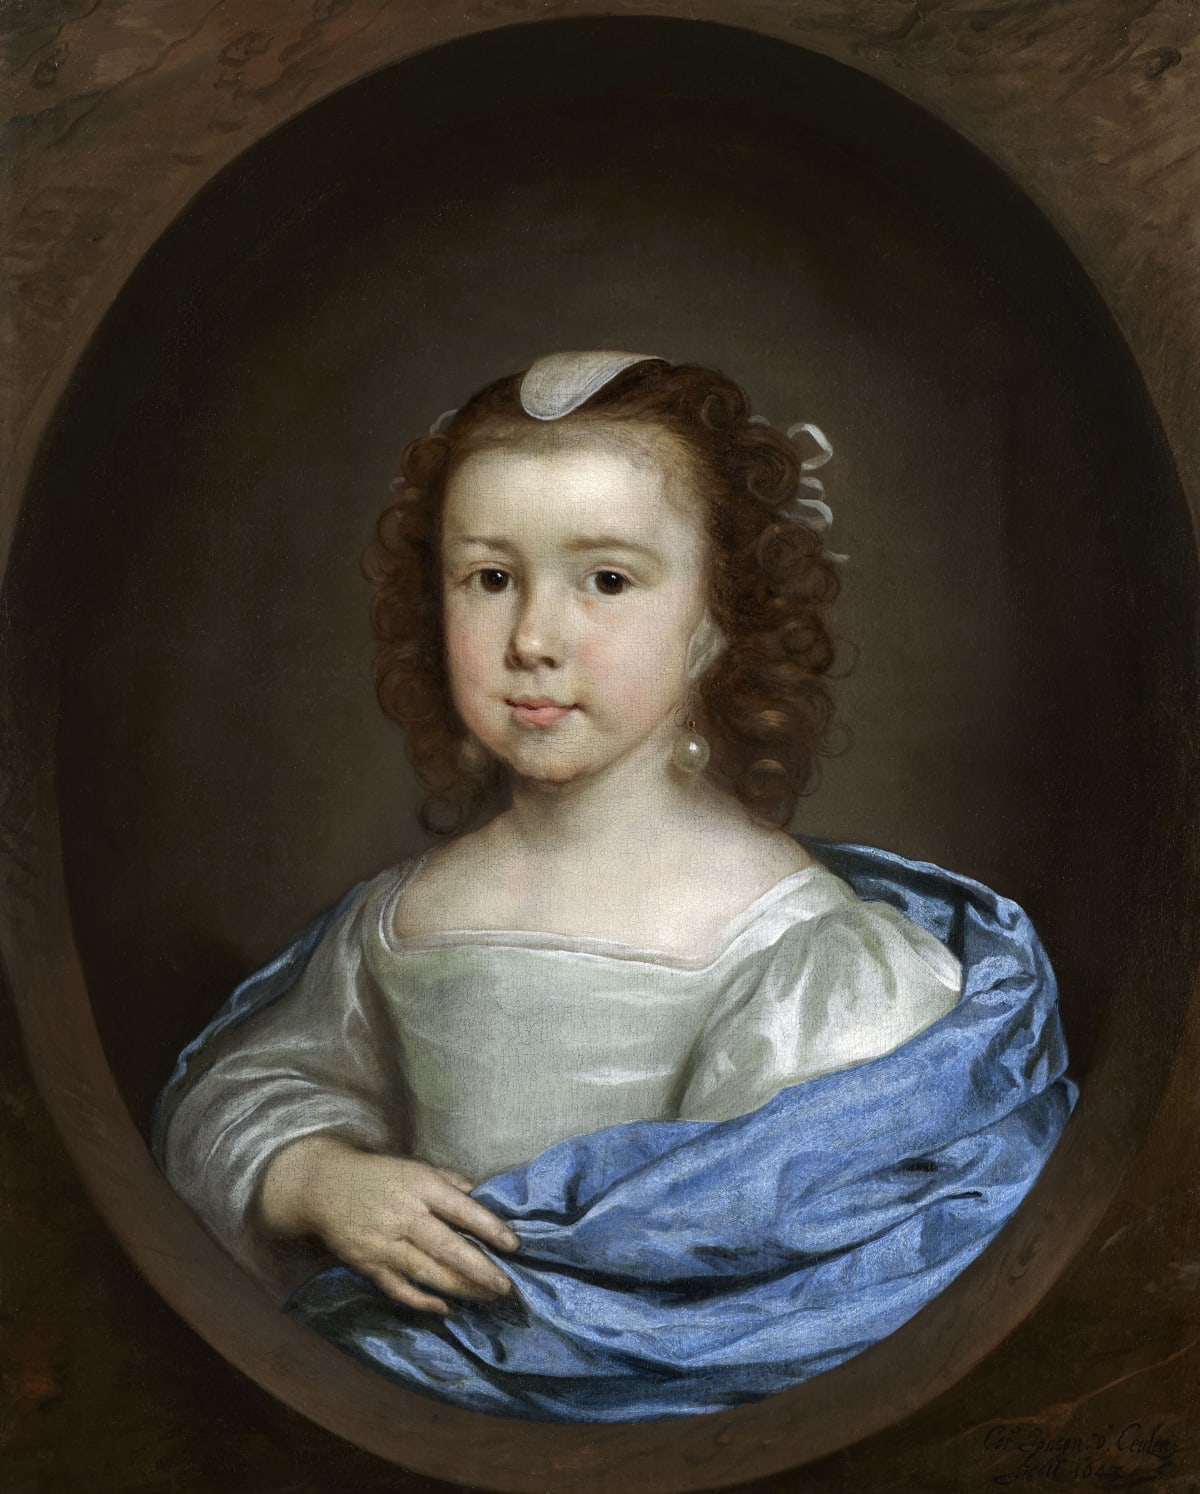 Cornelius Johnson (1593 - 1661) An Unknown Young Girl, 1643 Oil on canvas 25 ½ x 20 7/8 in. (64.7 x 52.9 cm.)